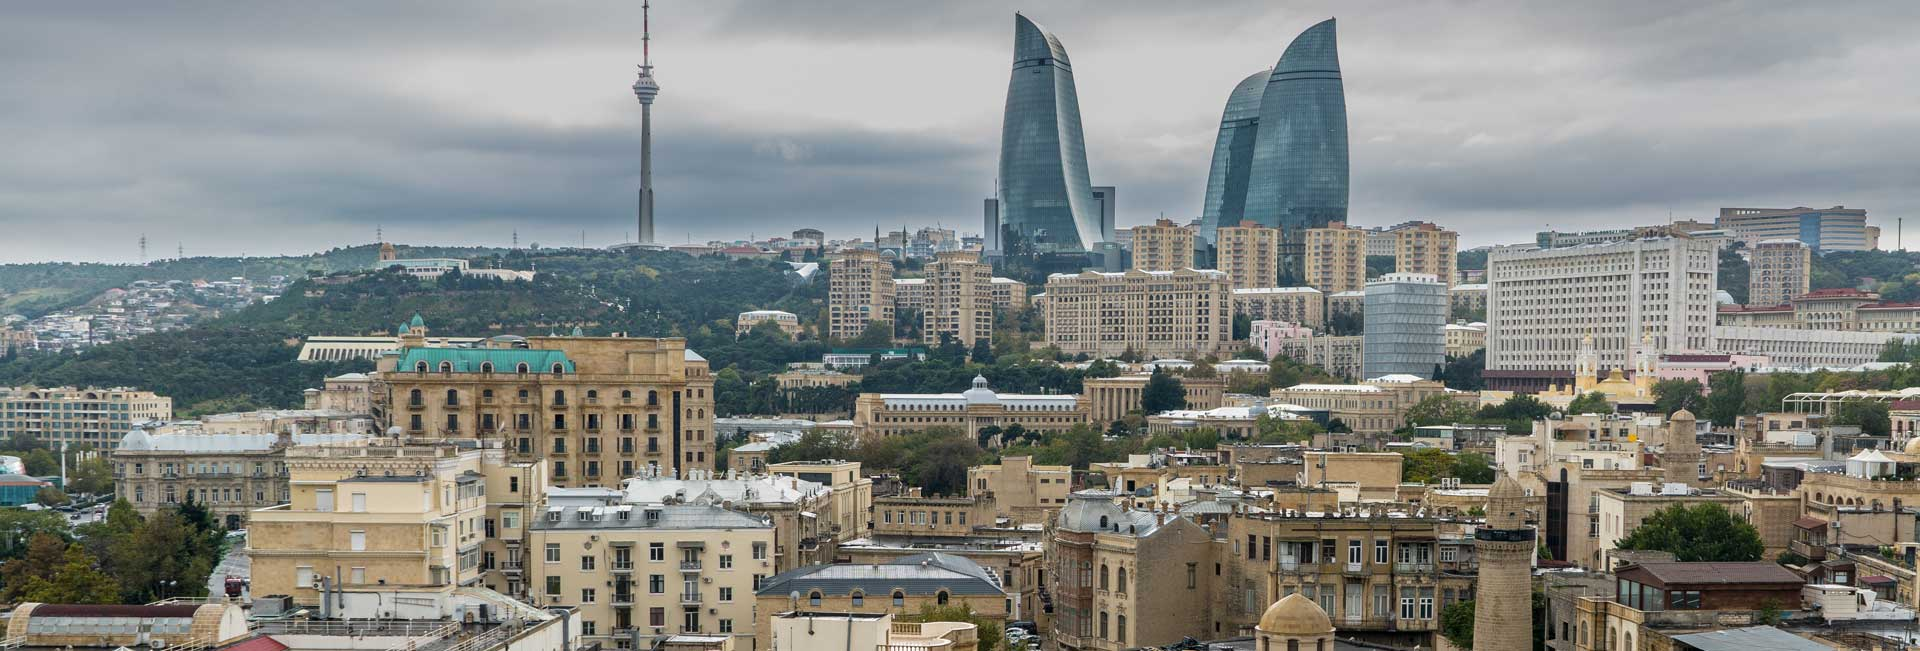 Panoramic view of Baku from Maiden Tower. Photo credit: Jered Gorman